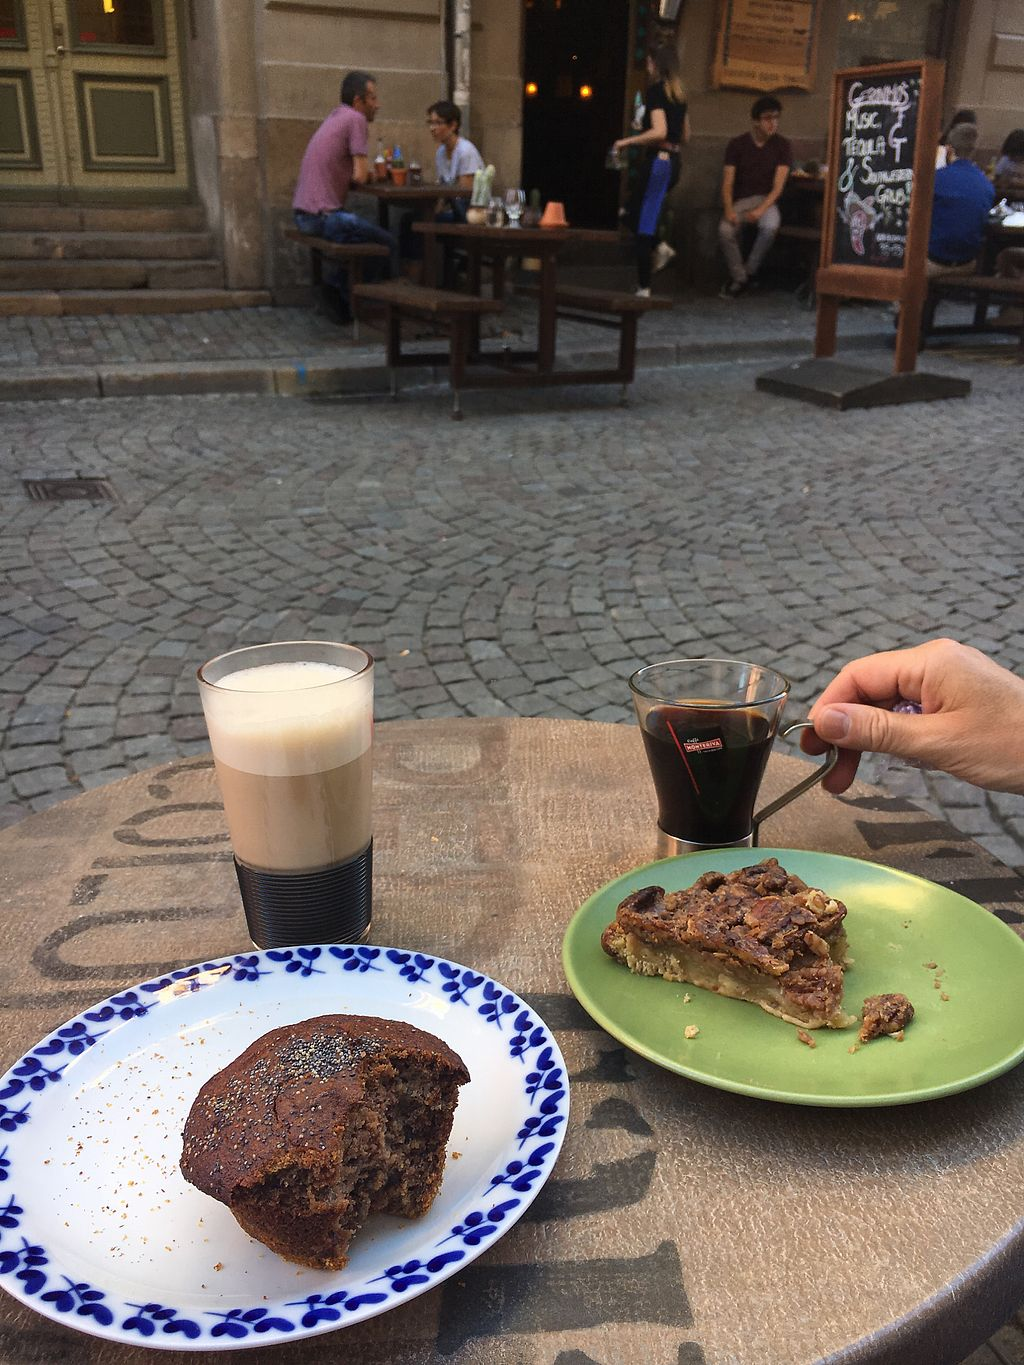 "Photo of Sattva Naturbageriet  by <a href=""/members/profile/L1n23"">L1n23</a> <br/>buckwheat muffin, pecan pear pie, coffee & chai latte <br/> August 14, 2017  - <a href='/contact/abuse/image/4443/292611'>Report</a>"